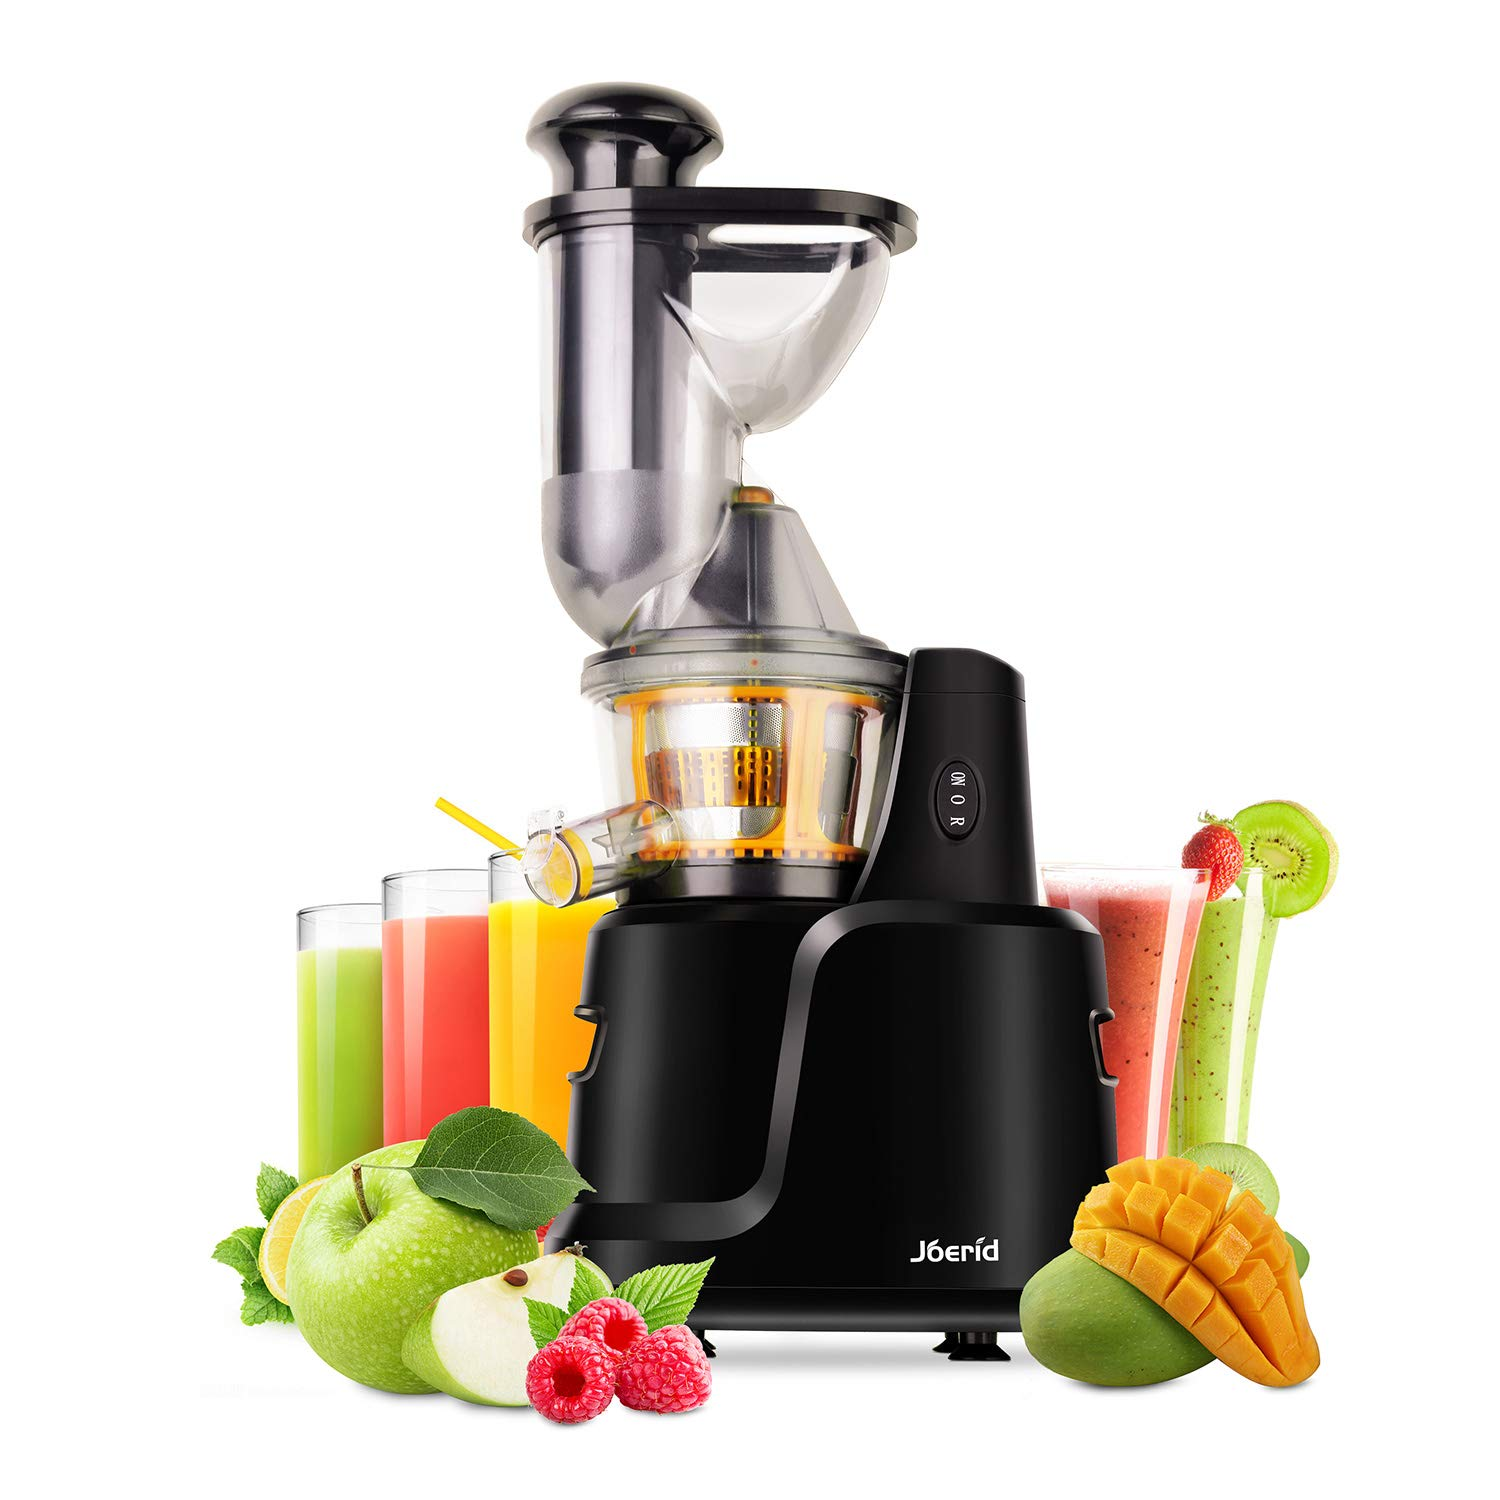 Juicer Machines,Slow Masticating Juicer Extractor Compact Cold Press Juicer Machine Wide Chute Cold Press Juicer by Joerid